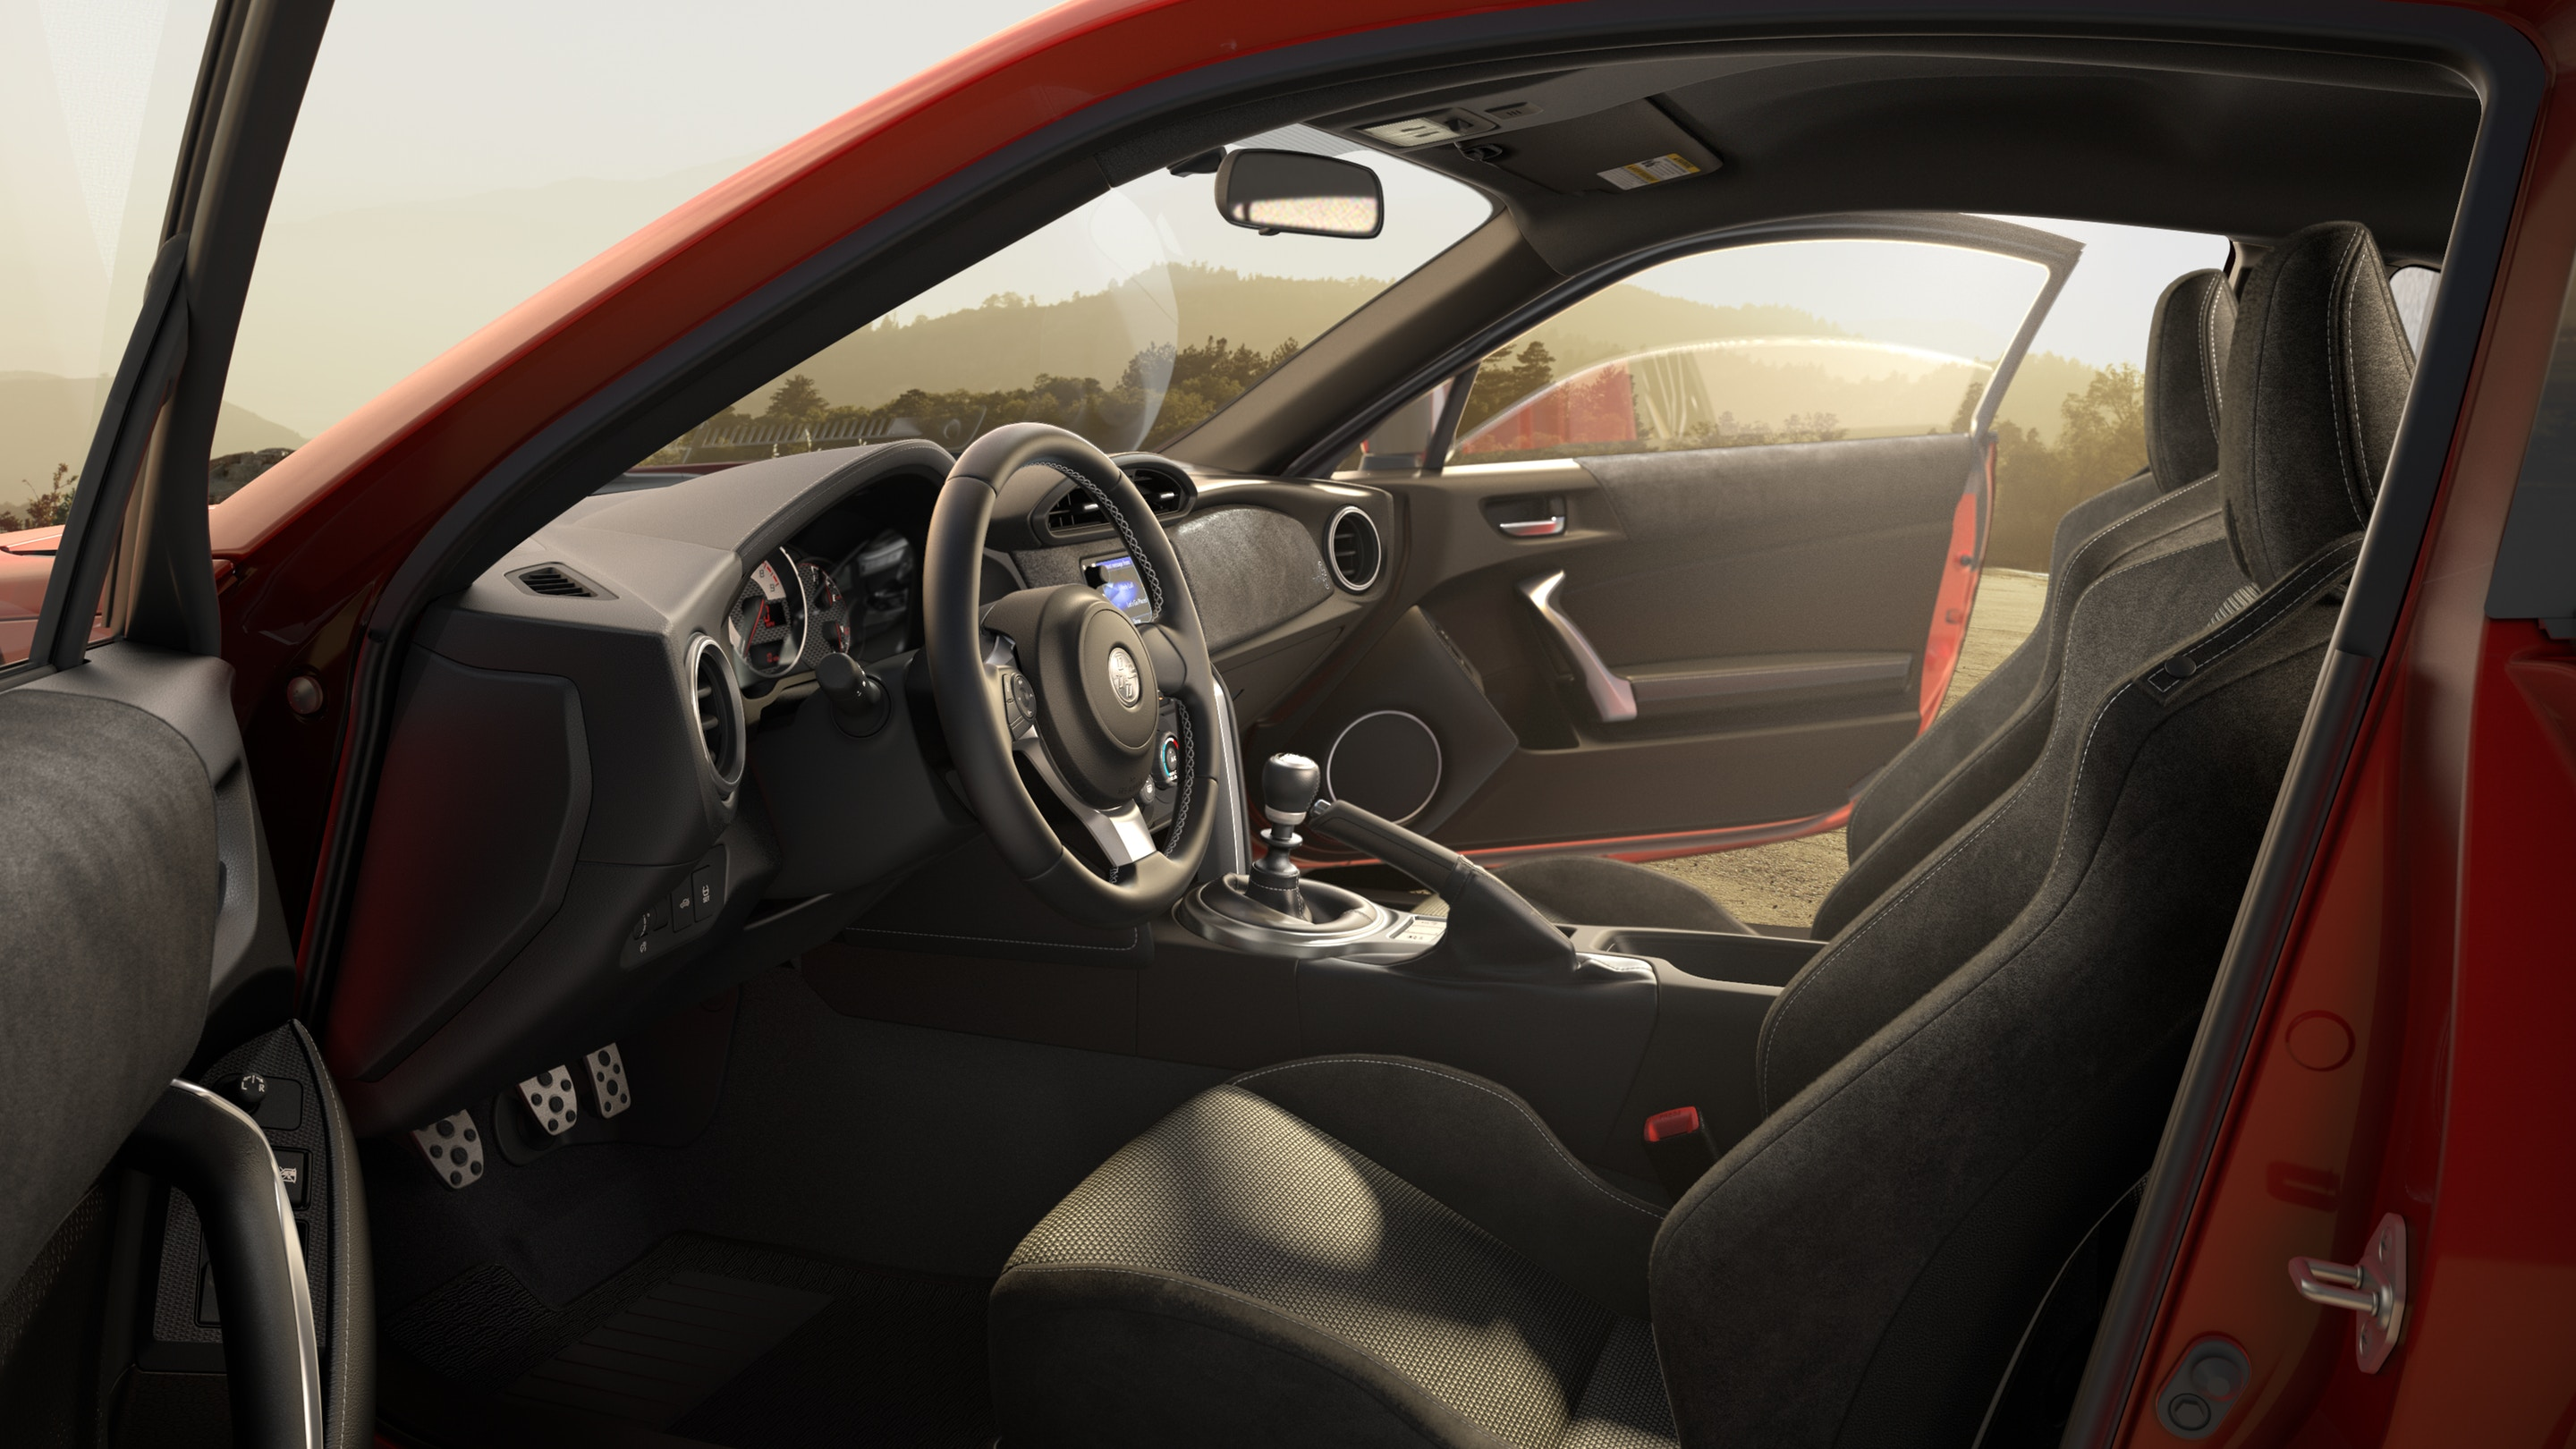 Step Inside the Toyota 86!